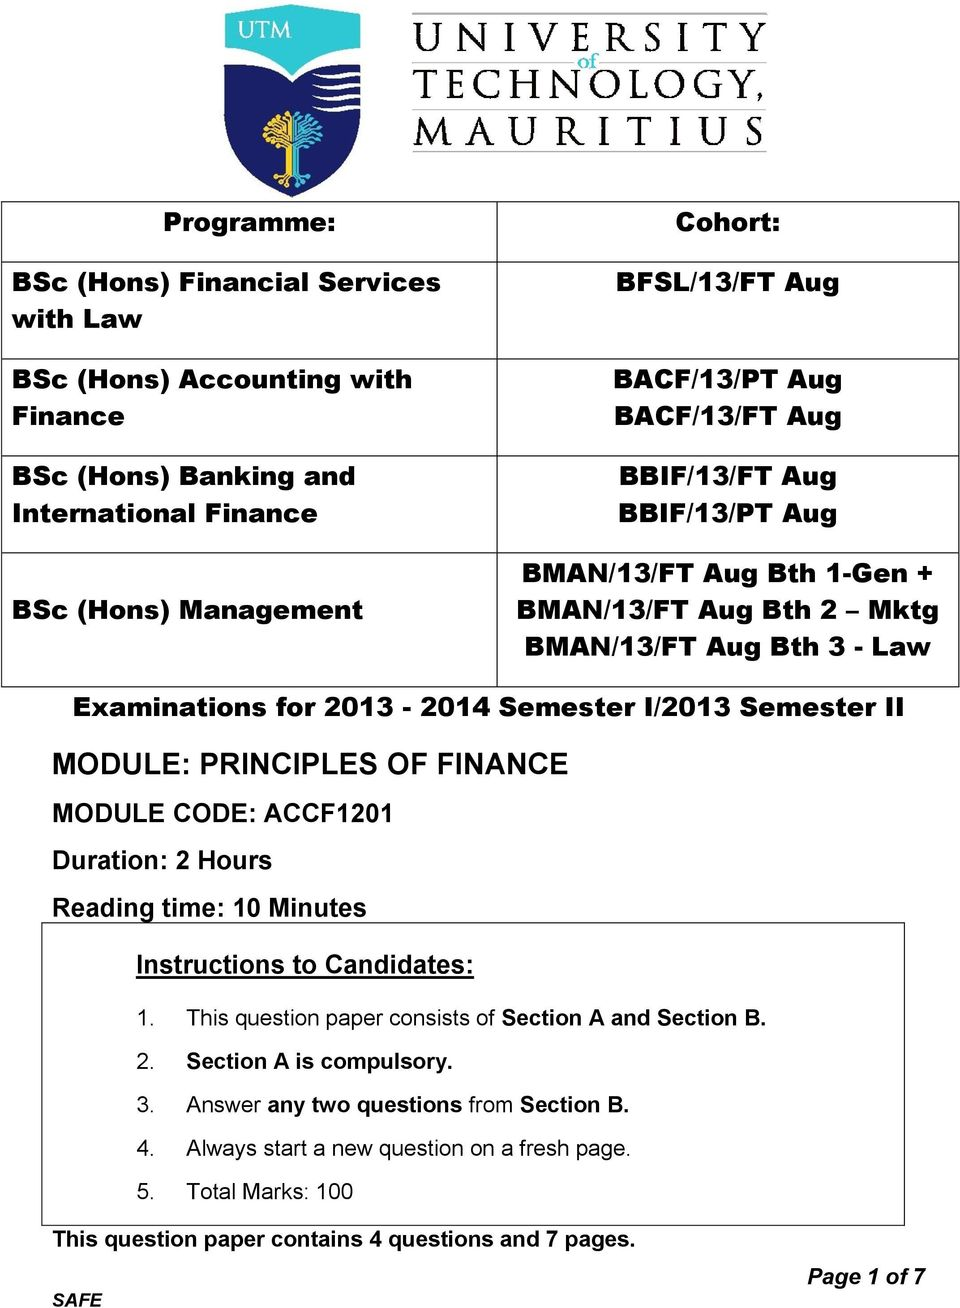 PRINCIPLES OF FINANCE MODULE CODE: ACCF1201 Duration: 2 Hours Reading time: 10 Minutes Instructions to Candidates: 1. This question paper consists of Section A and Section B. 2. Section A is compulsory.